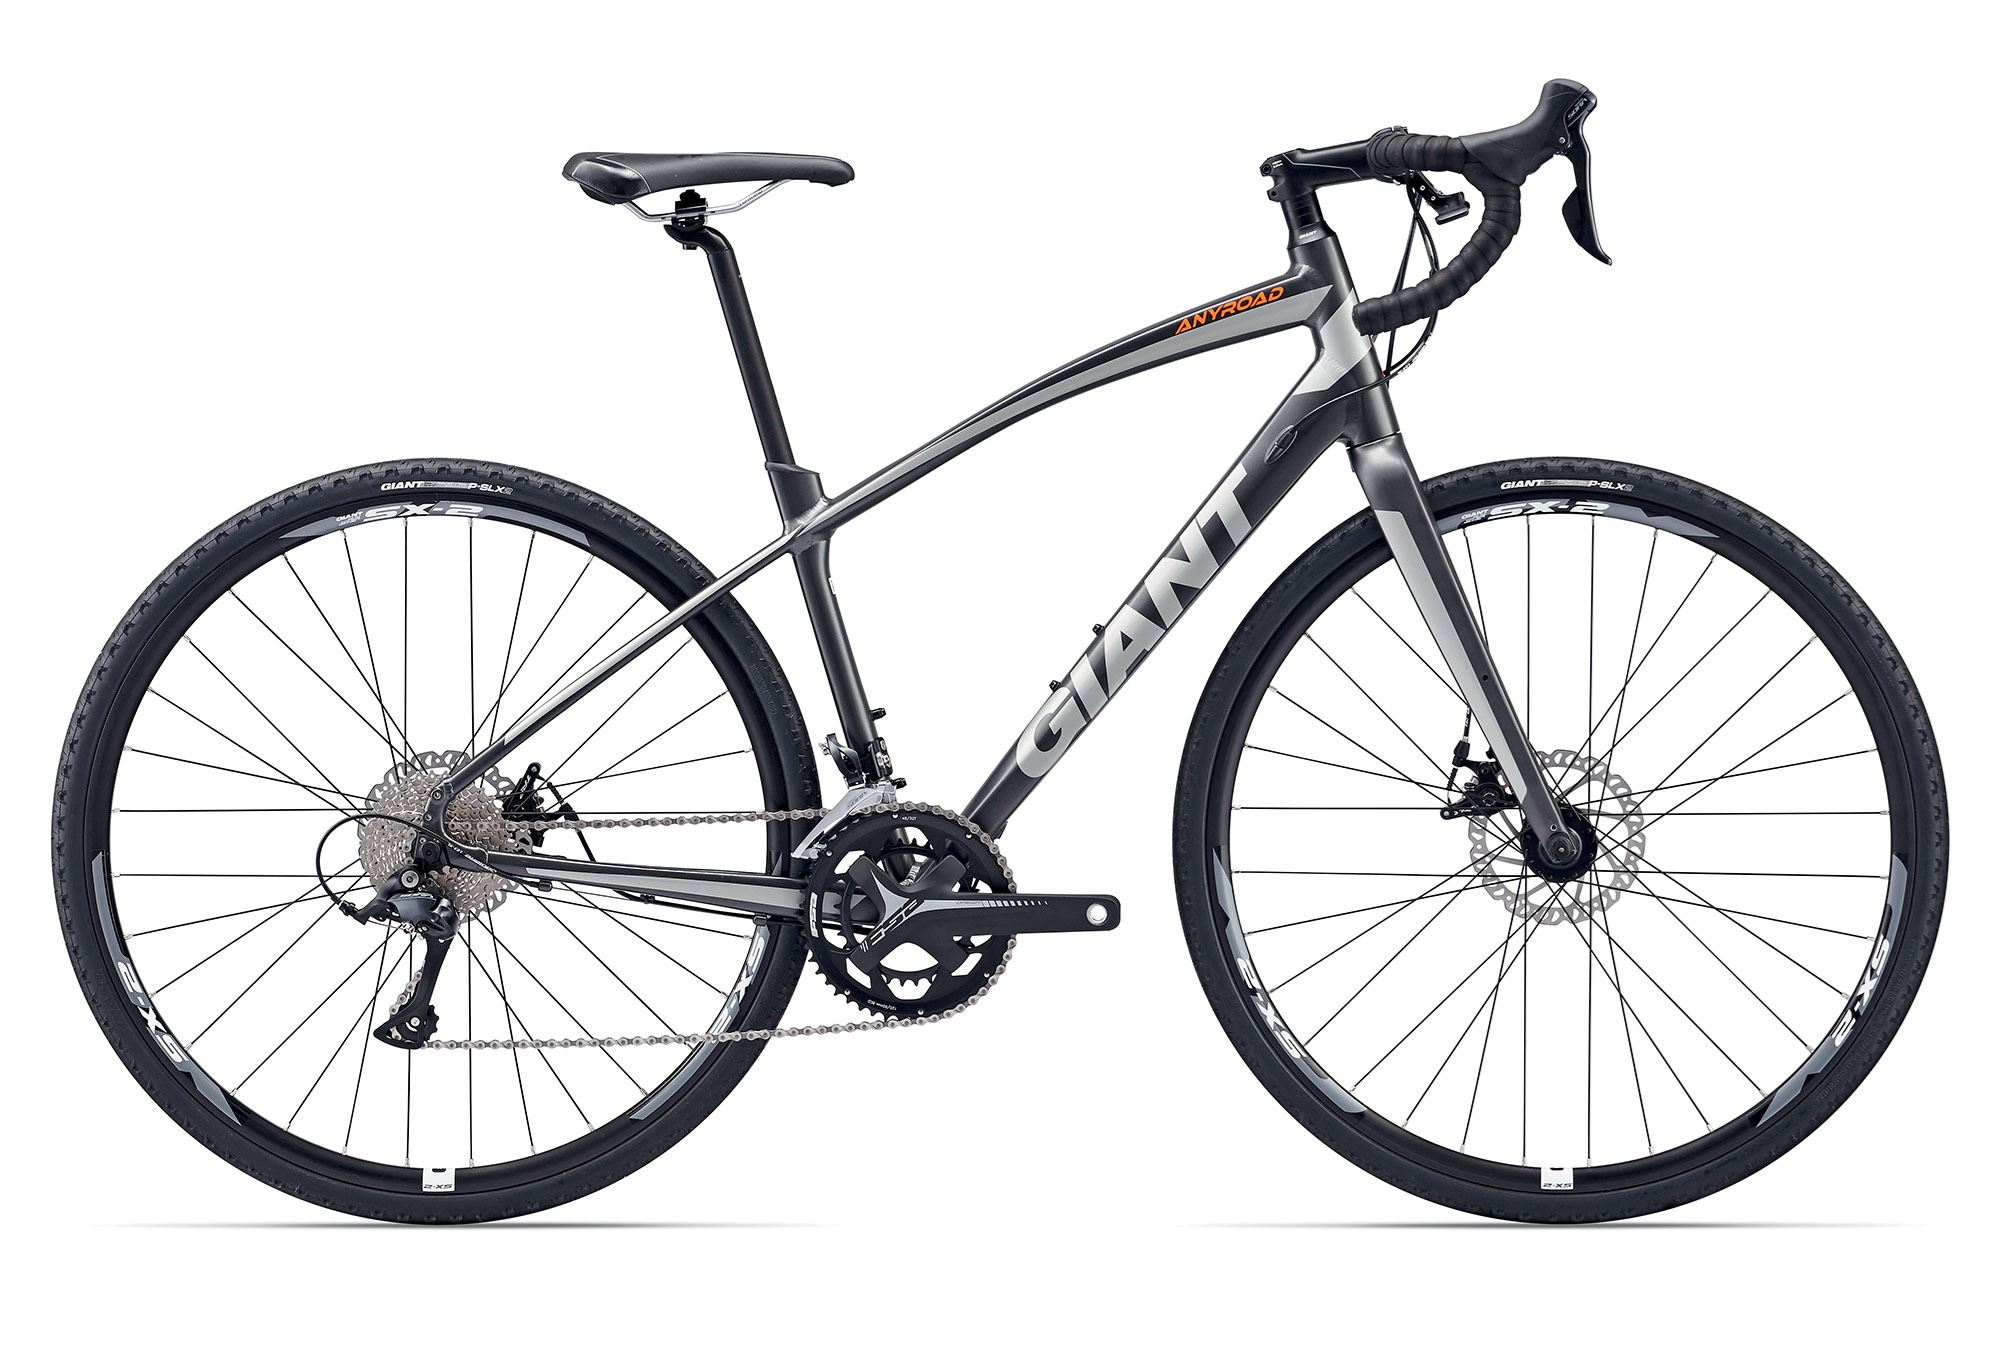 2017 Giant AnyRoad 2 £899